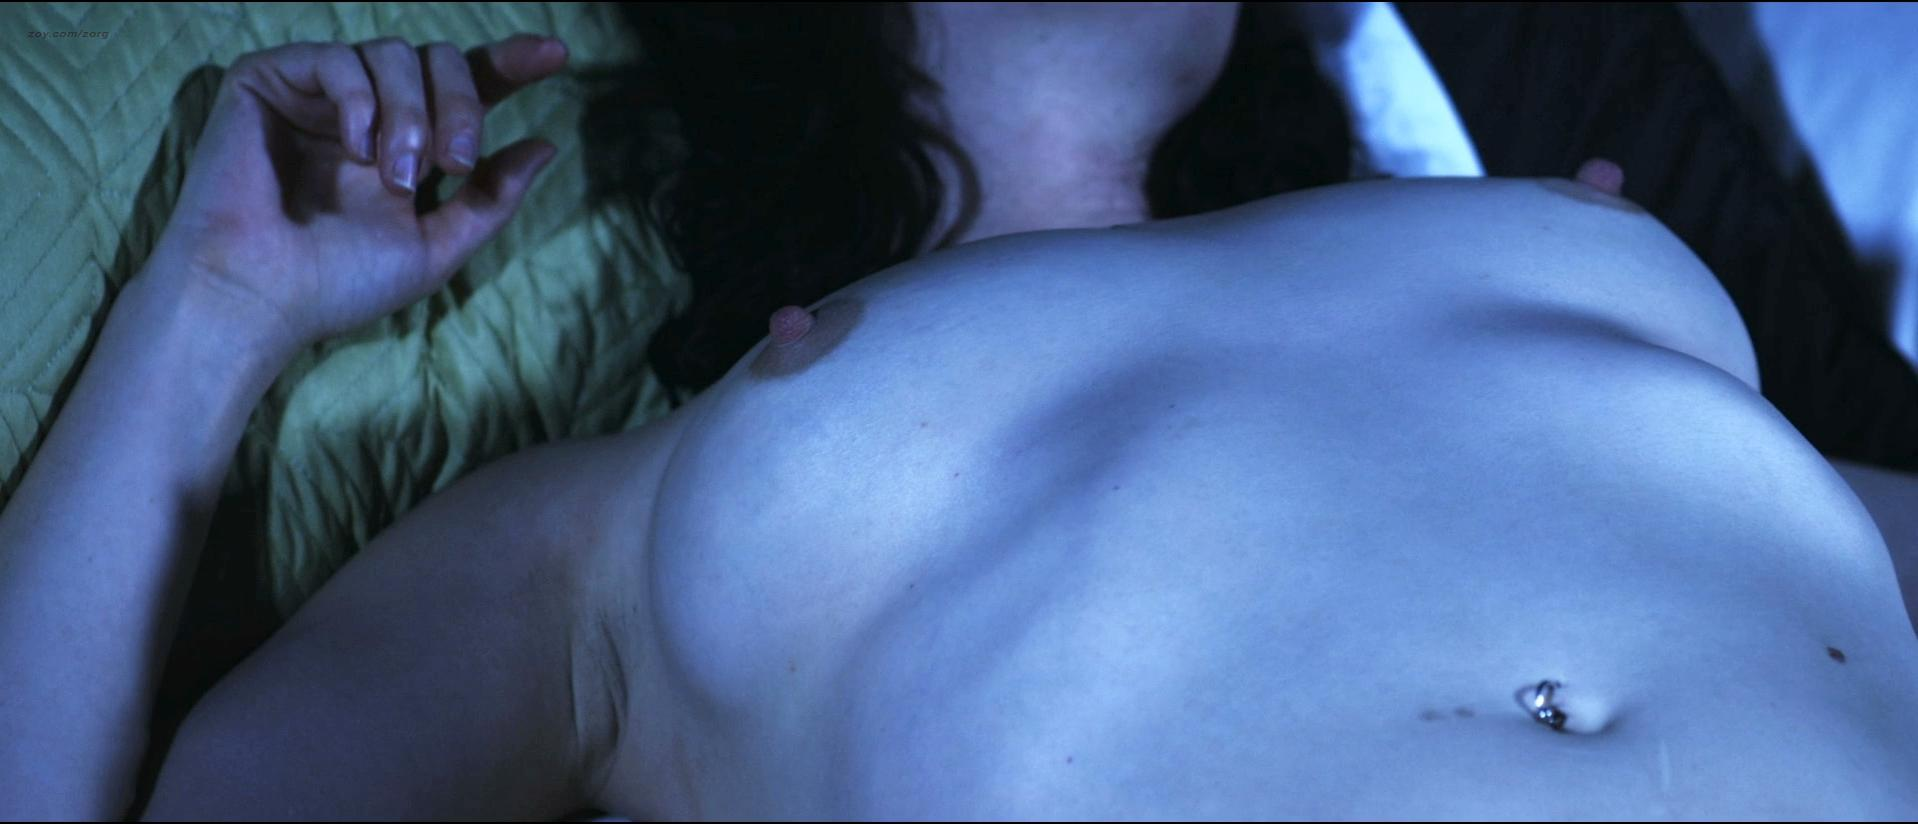 Monica Engesser nude, Carrie Fee nude - The Reckoning (2015)